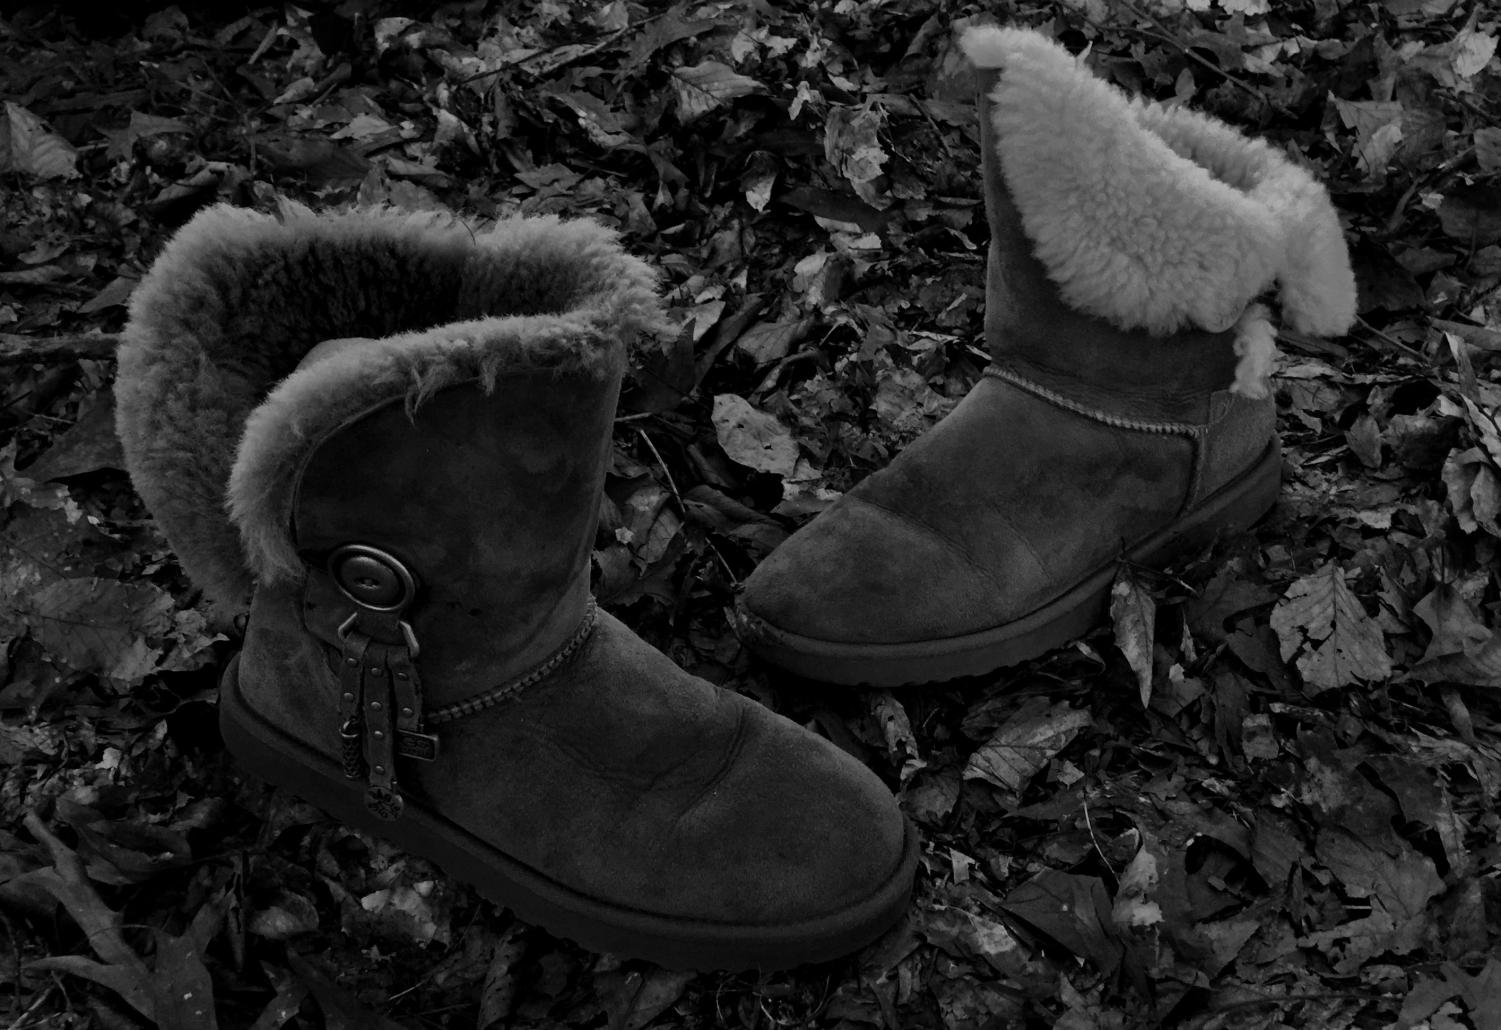 Cozy footwear such as moccasins and Ugg - style boots remain popular for fall.